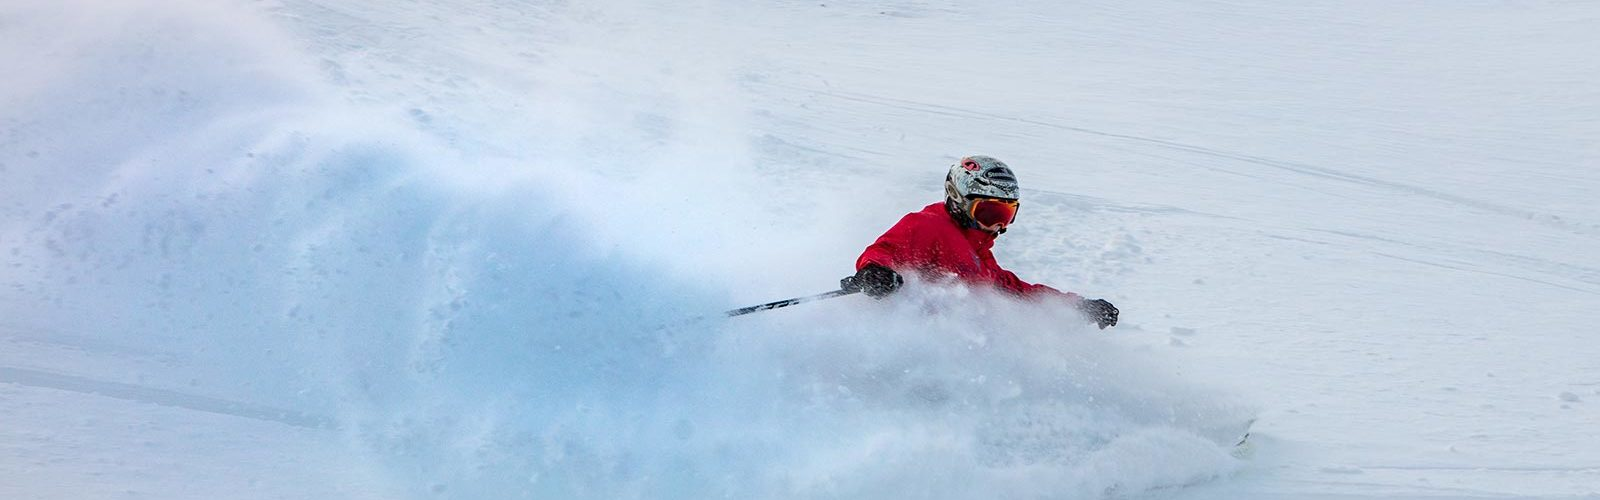 Tristan Rowley skis almost all year! He spends winter in Mount Hotham, and then travels to the United States and Japan for a few months during their snow season. Photo: Karl Gray, Mount Hotham Skiing Company